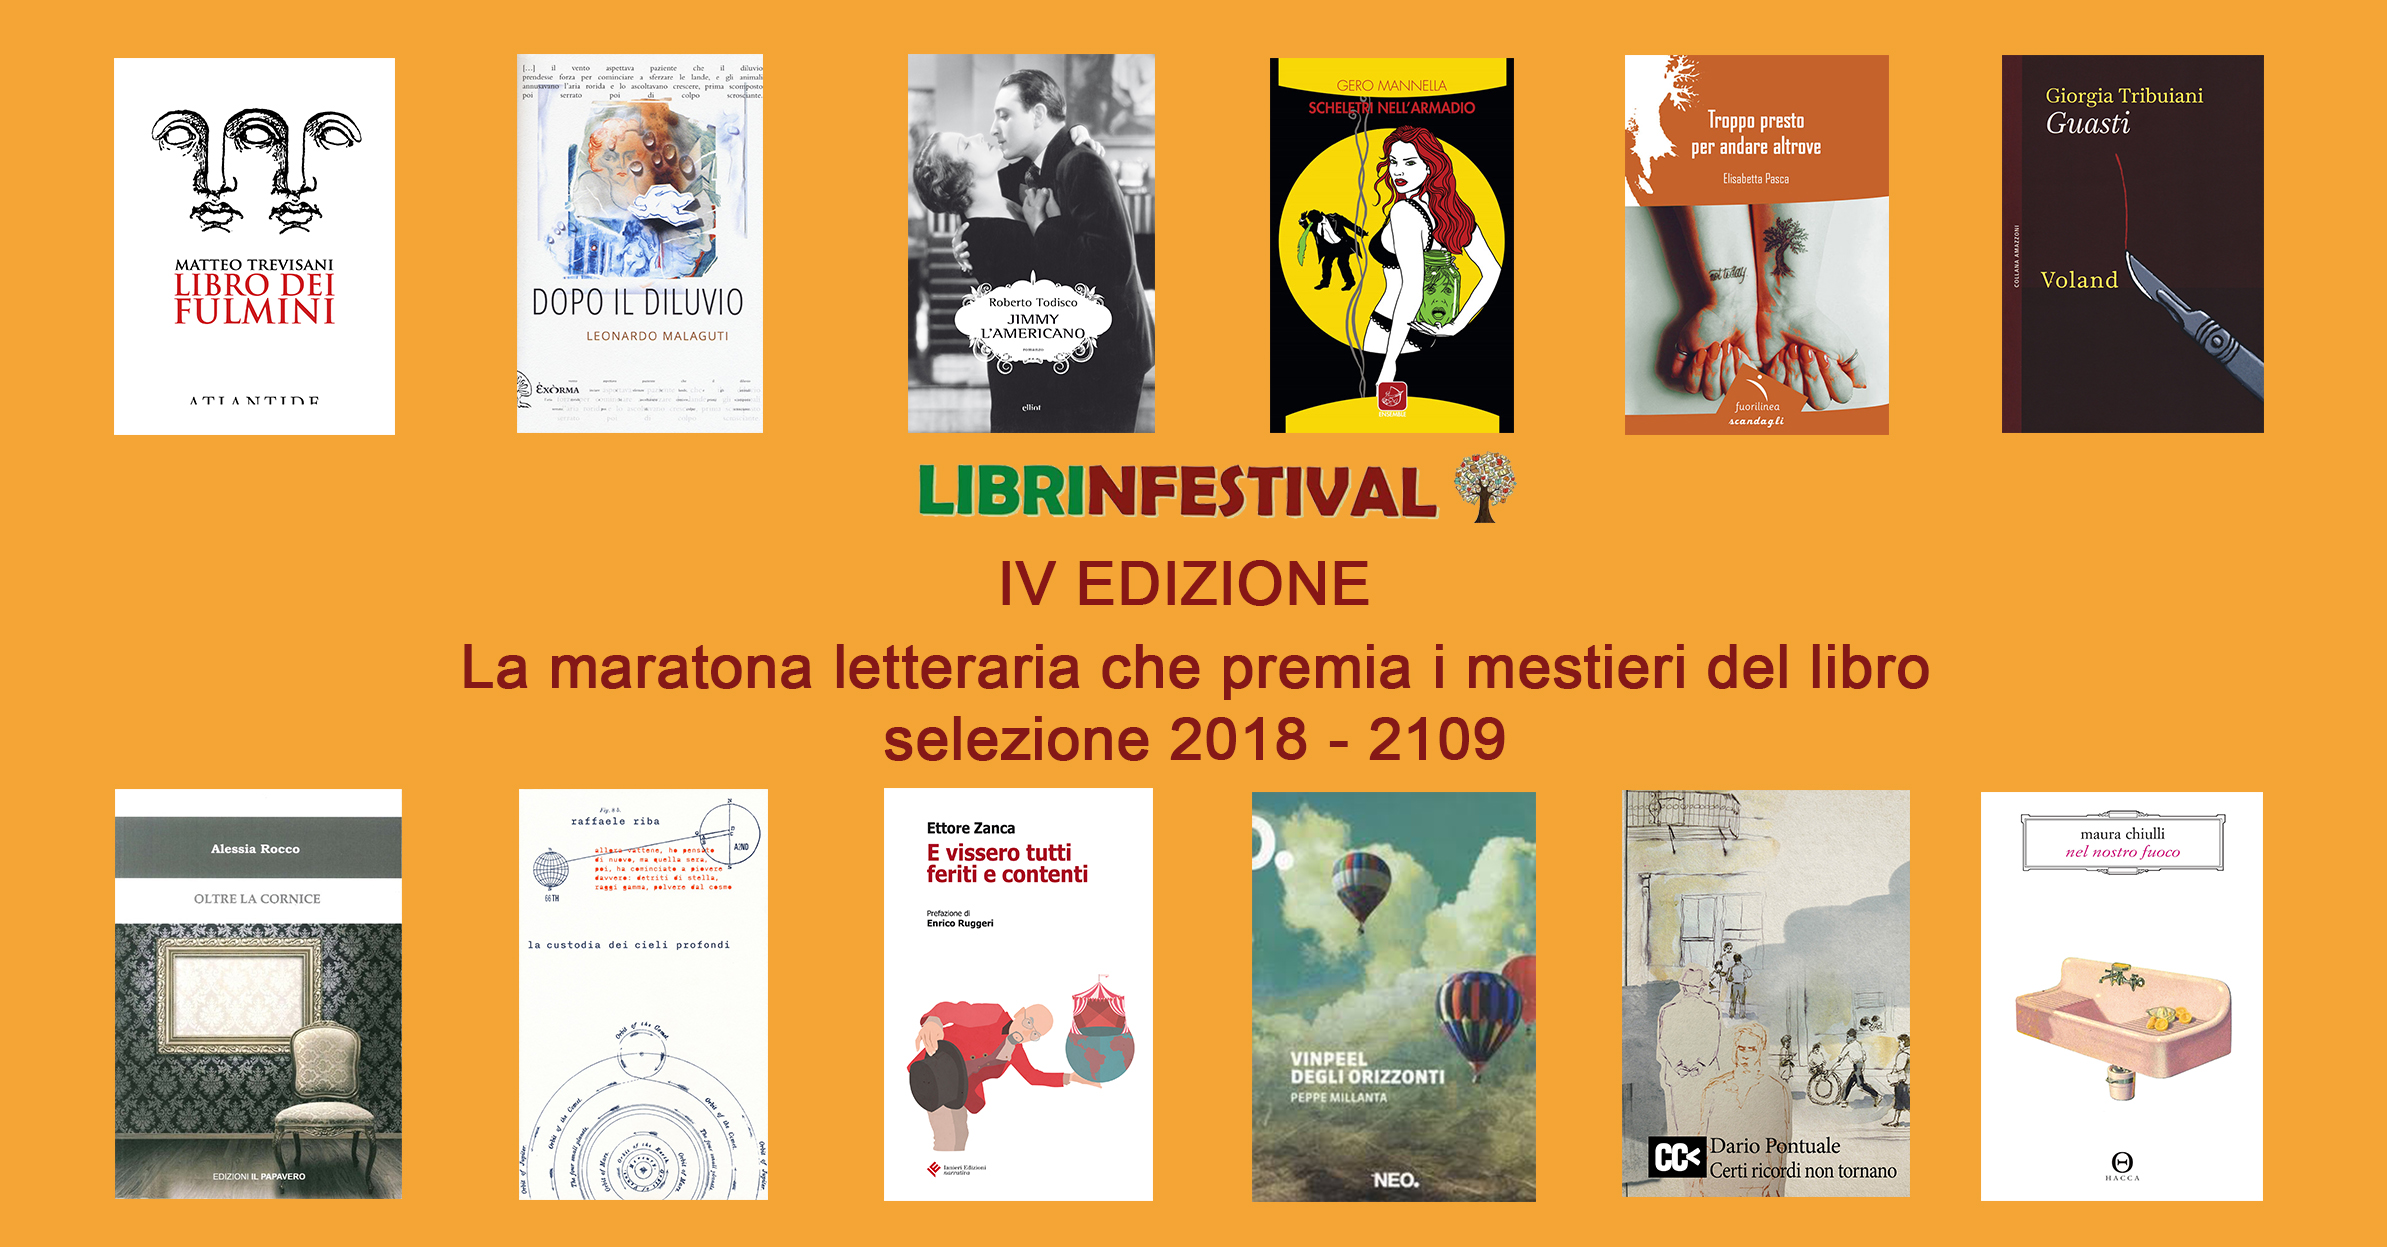 LIBRINFESTIVAL